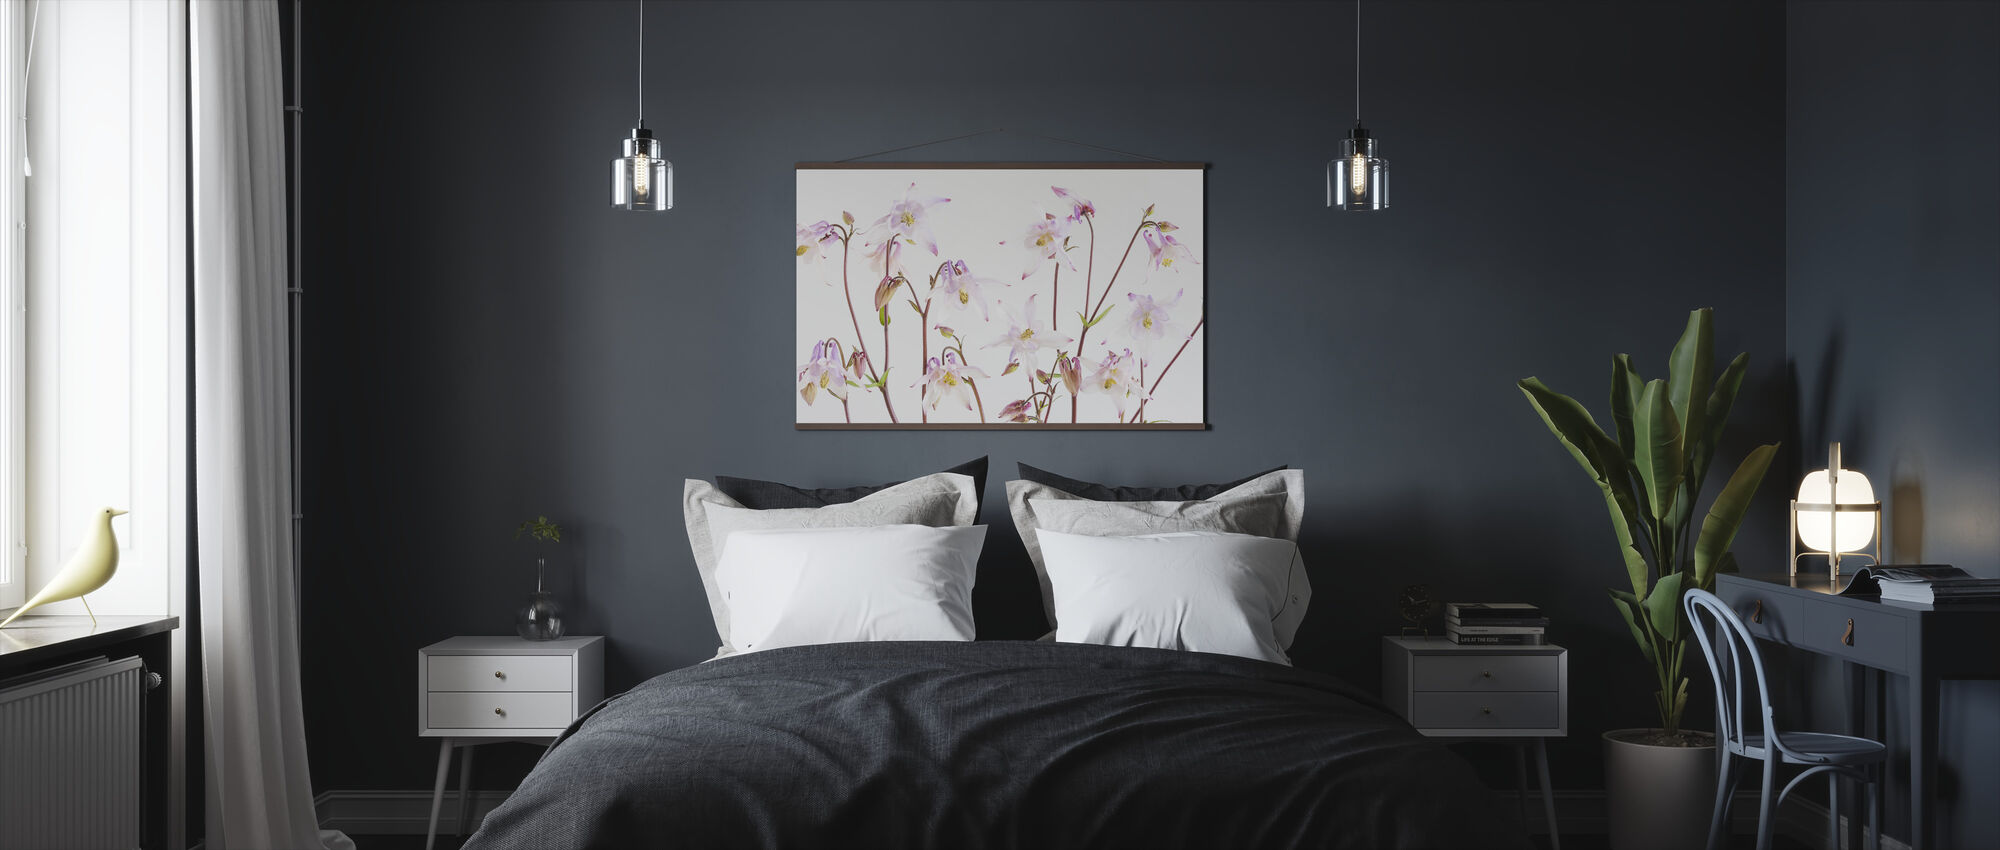 Aquilegia - Poster - Bedroom